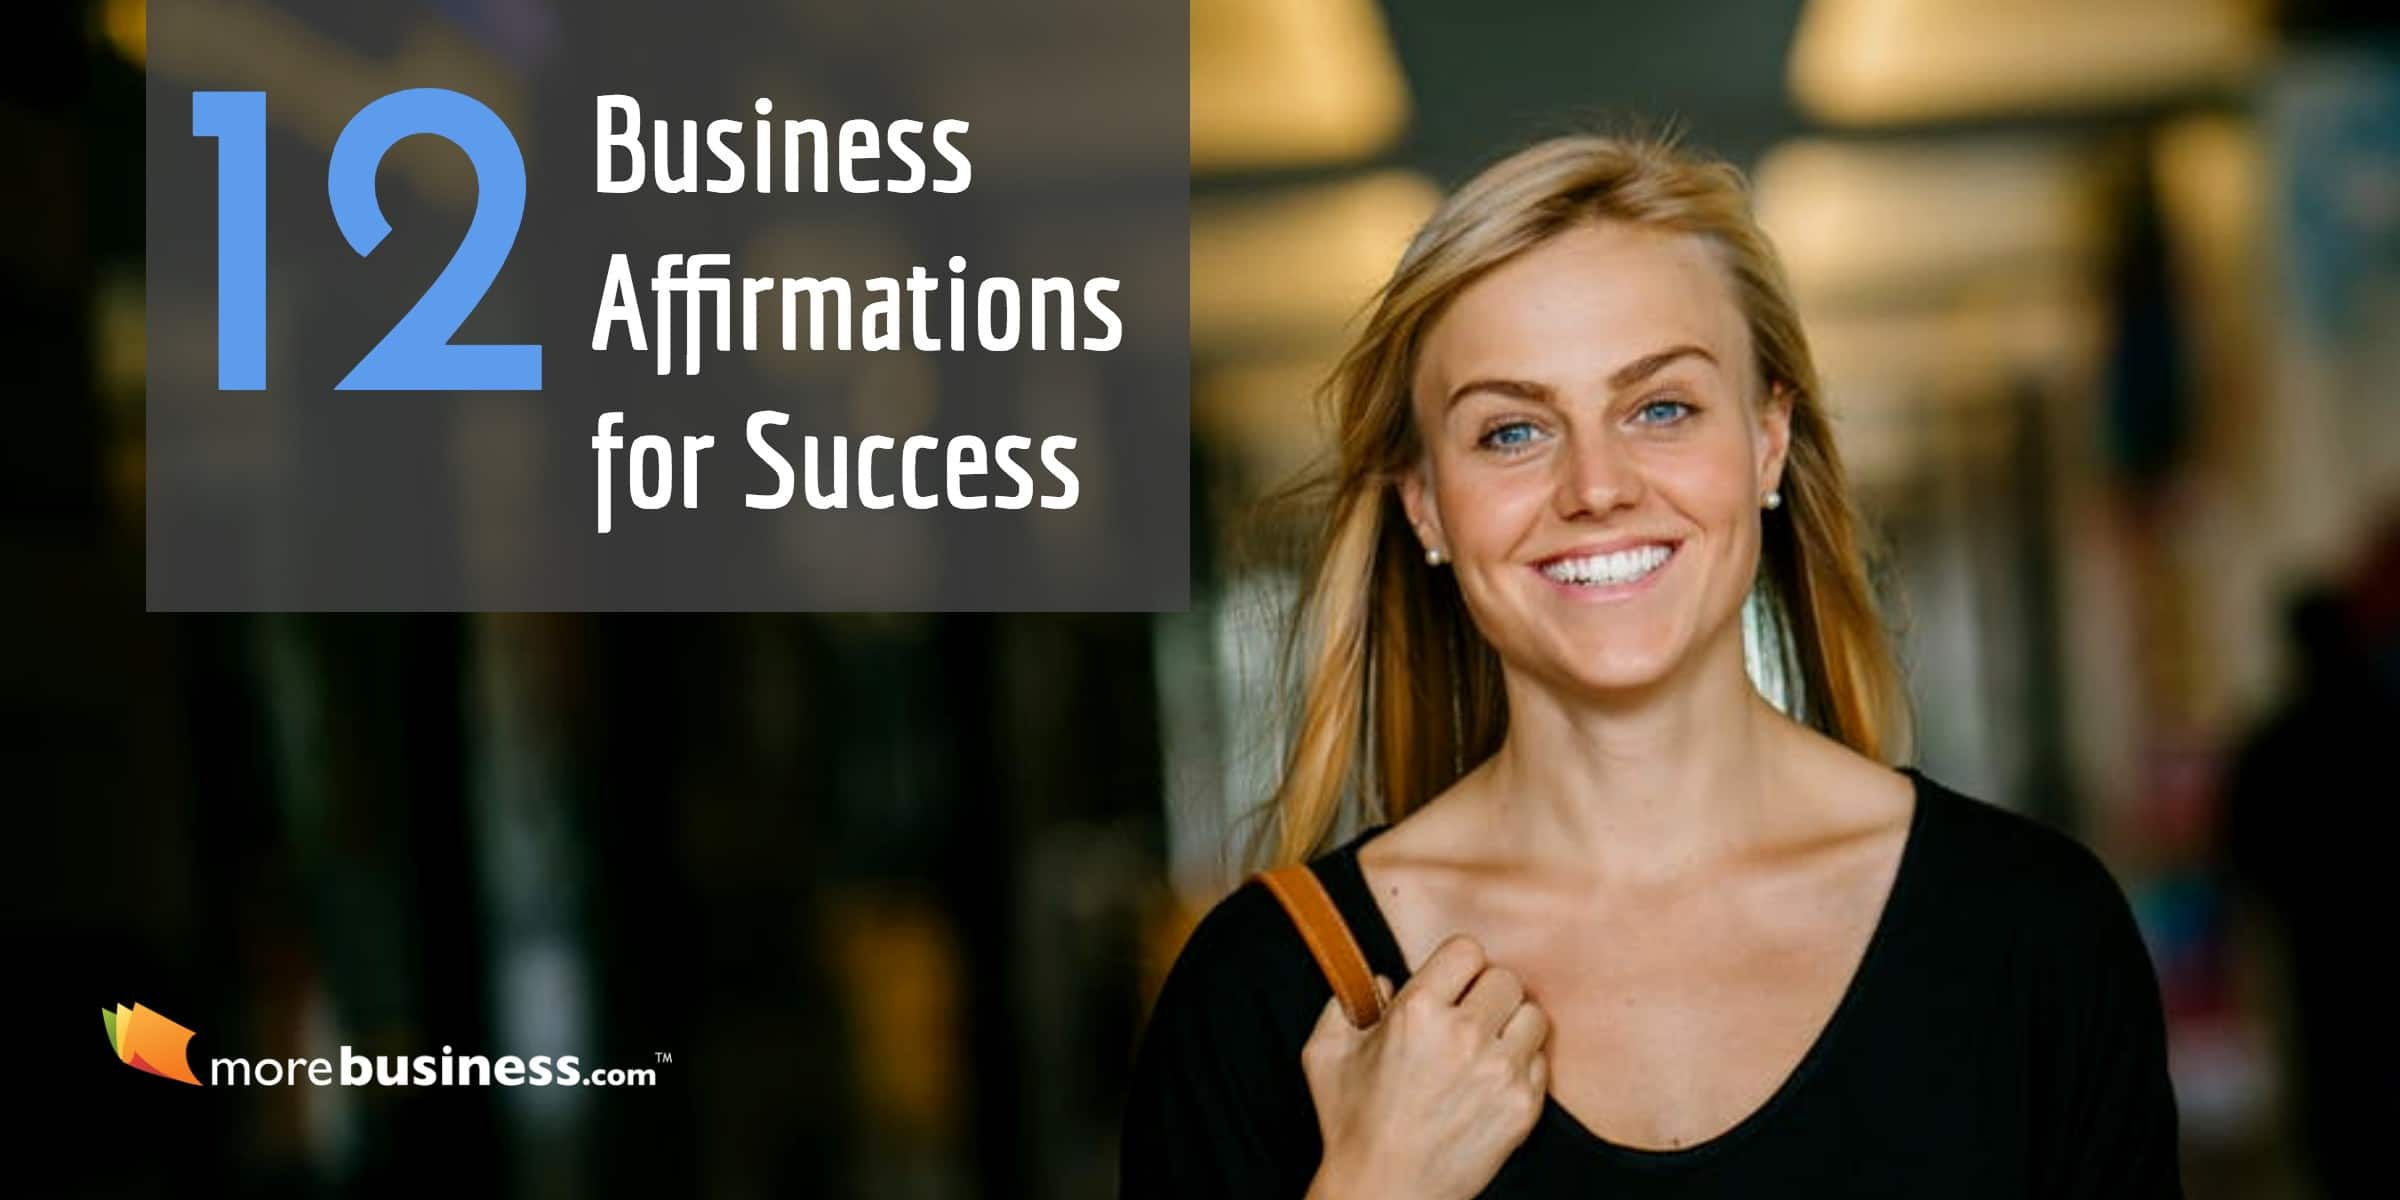 Business Affirmations Download - Microsoft Word and PDF Formats